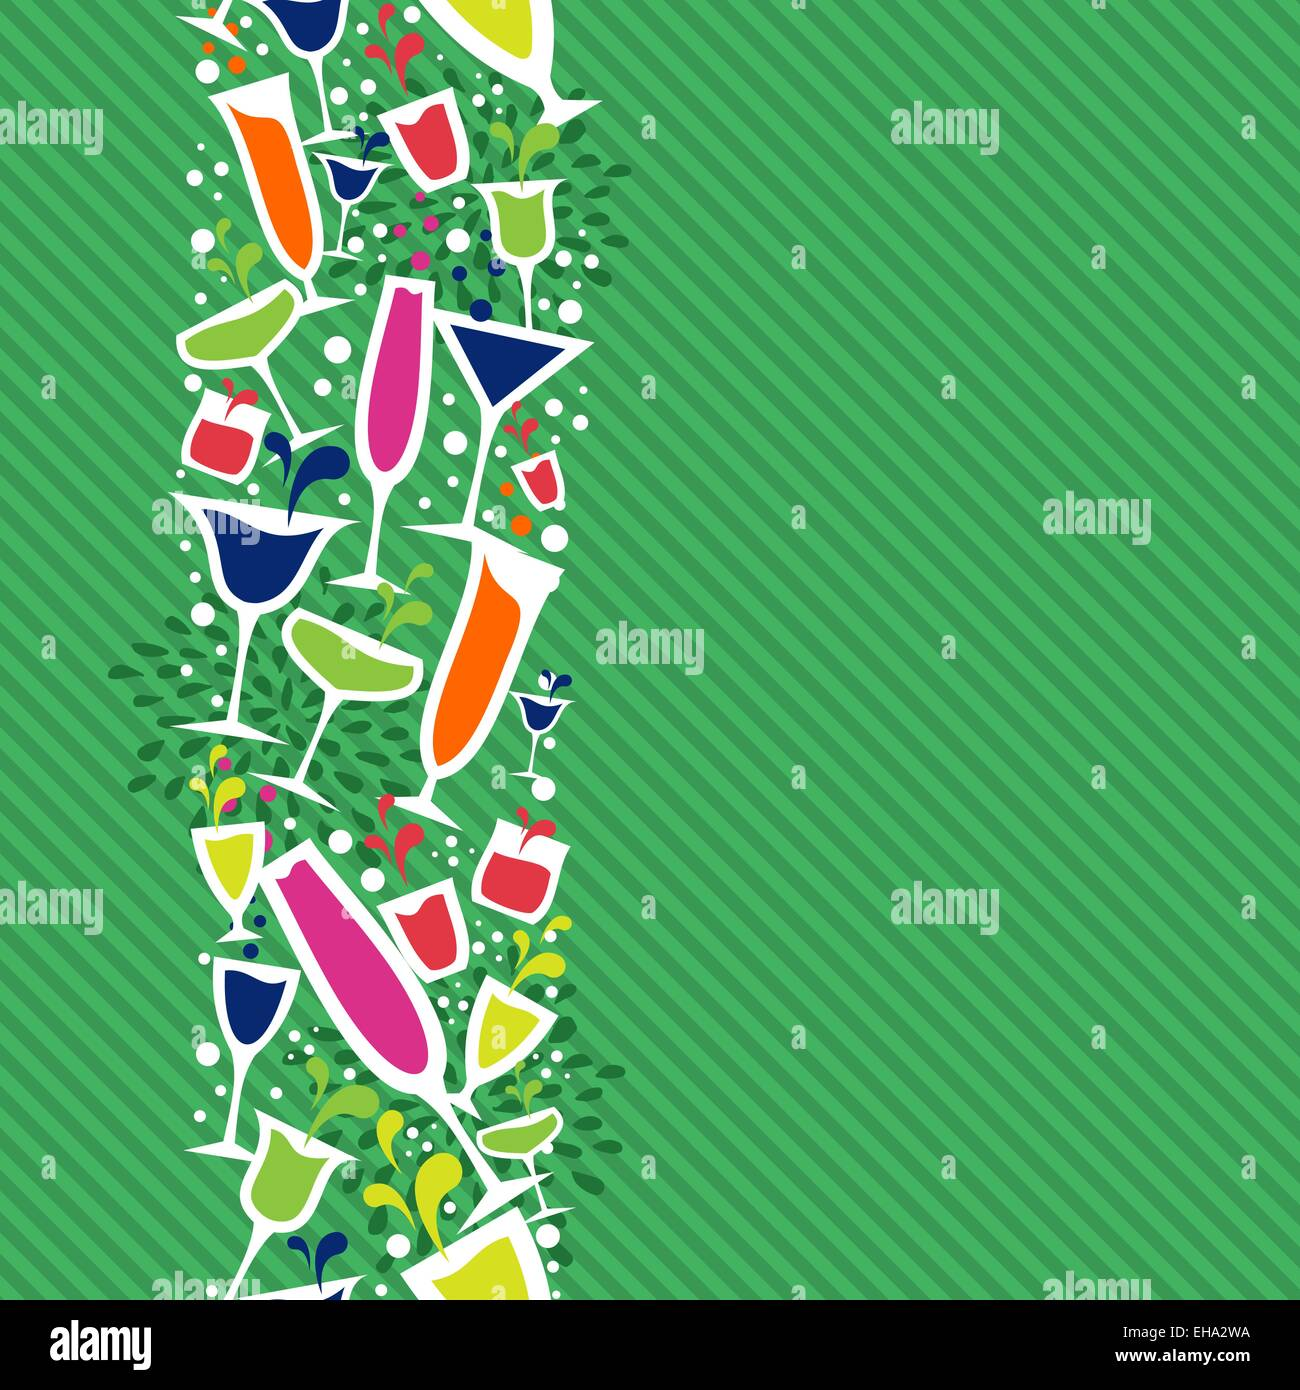 Colorful Cocktail Glass Seamless Pattern Background Ideas For Stock Vector Image Art Alamy